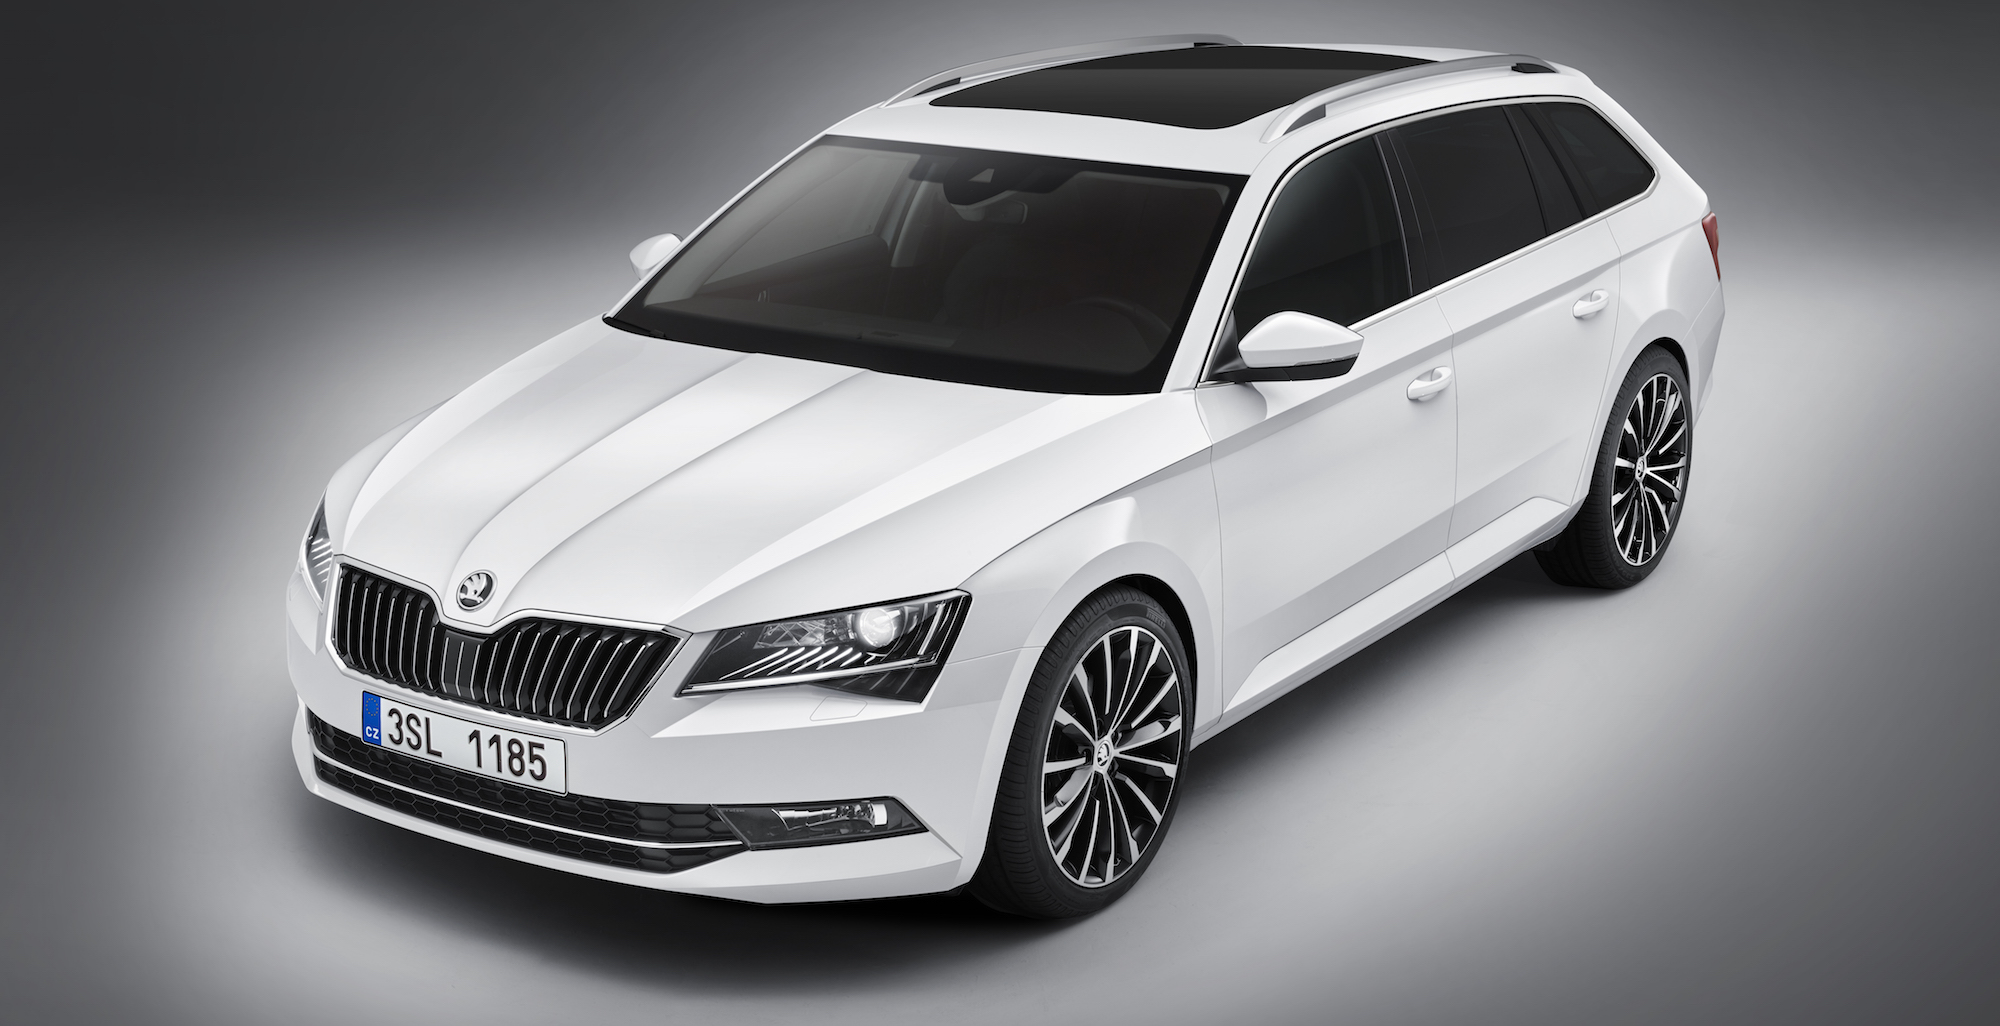 2017 Skoda Superb wagon price